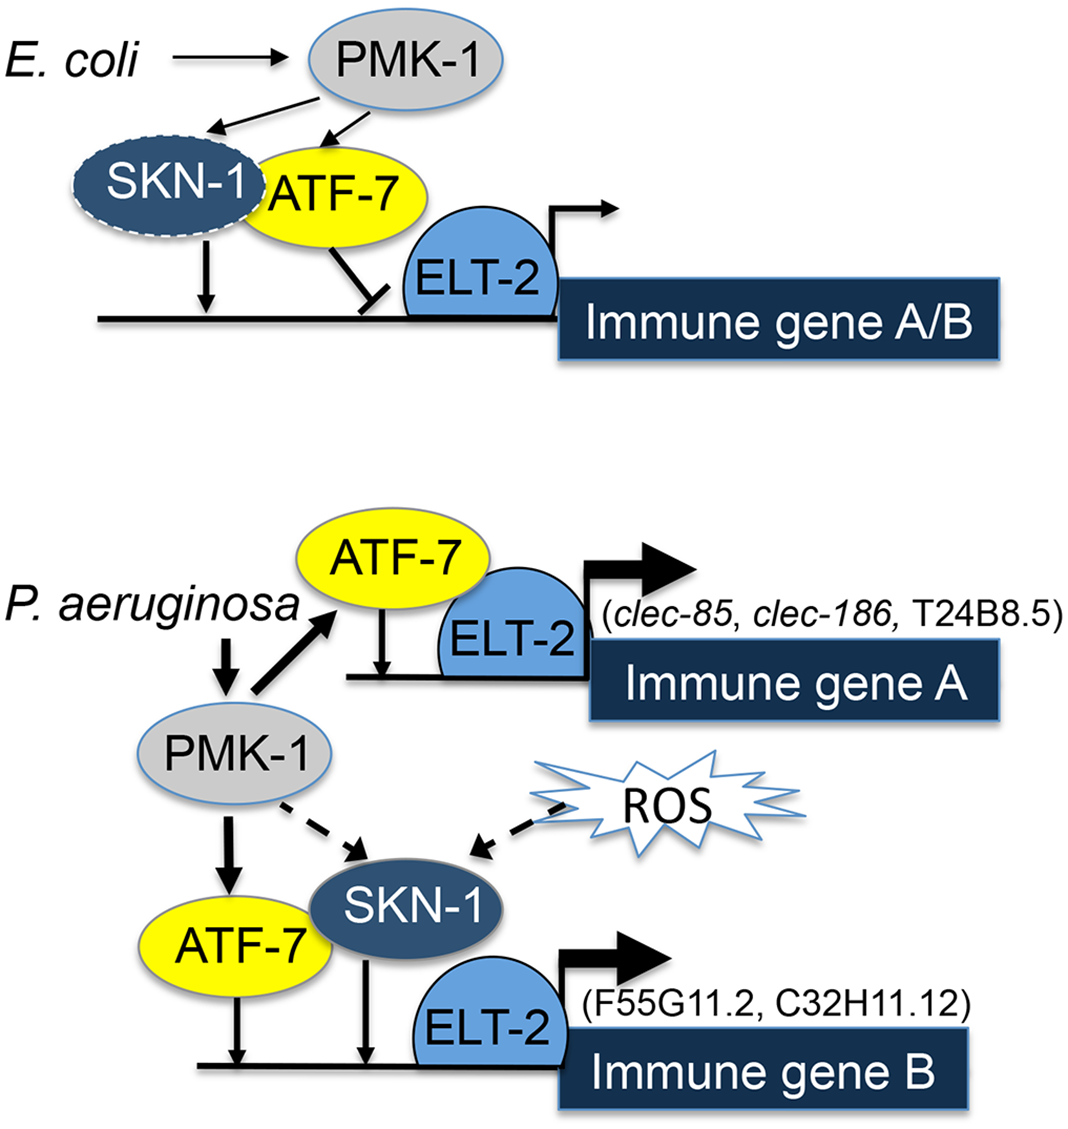 ELT-2-PMK-1-ATF-7-SKN-1 interactions in gene regulation.